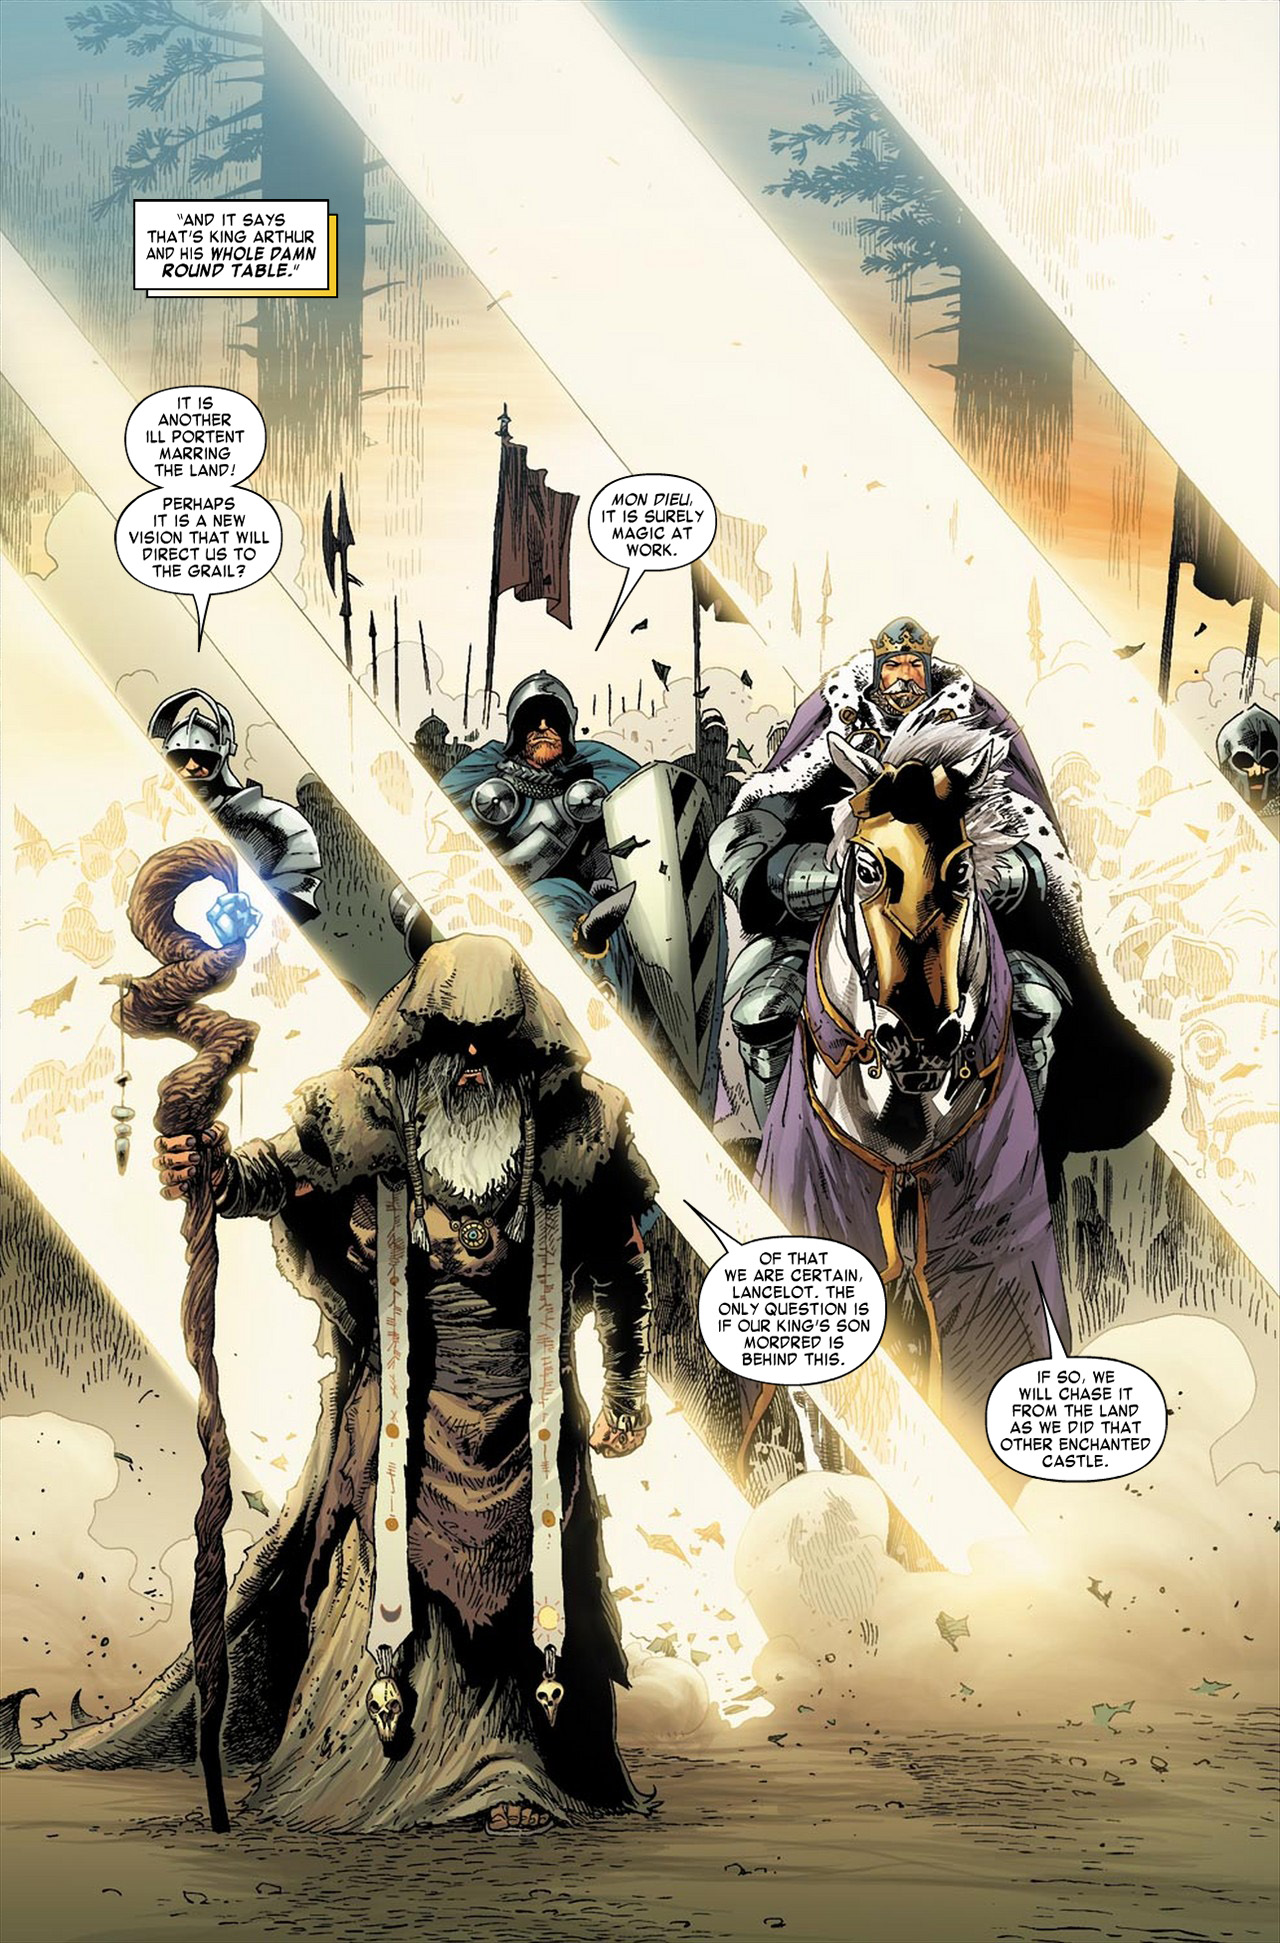 Knights of the Round Table (Earth-616)/Gallery